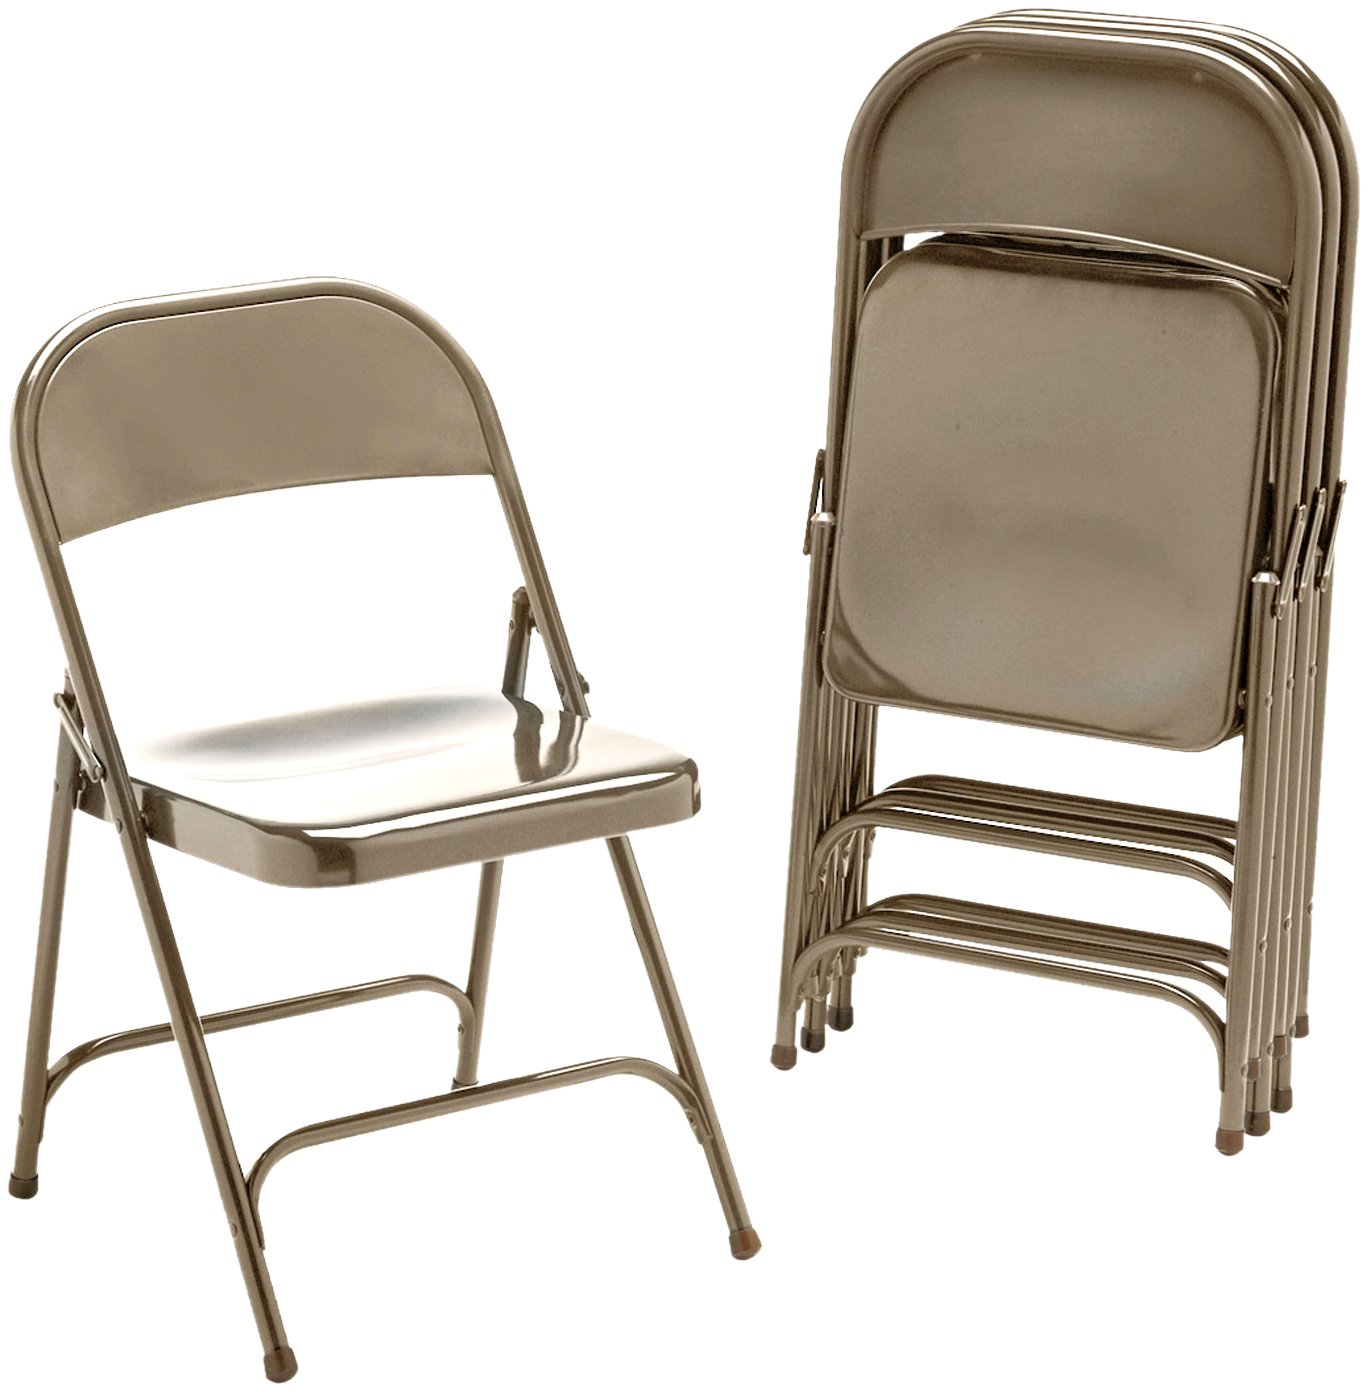 Amazon.com: Virco 16213K Metal Folding Chairs, Bronze, Four/carton ...